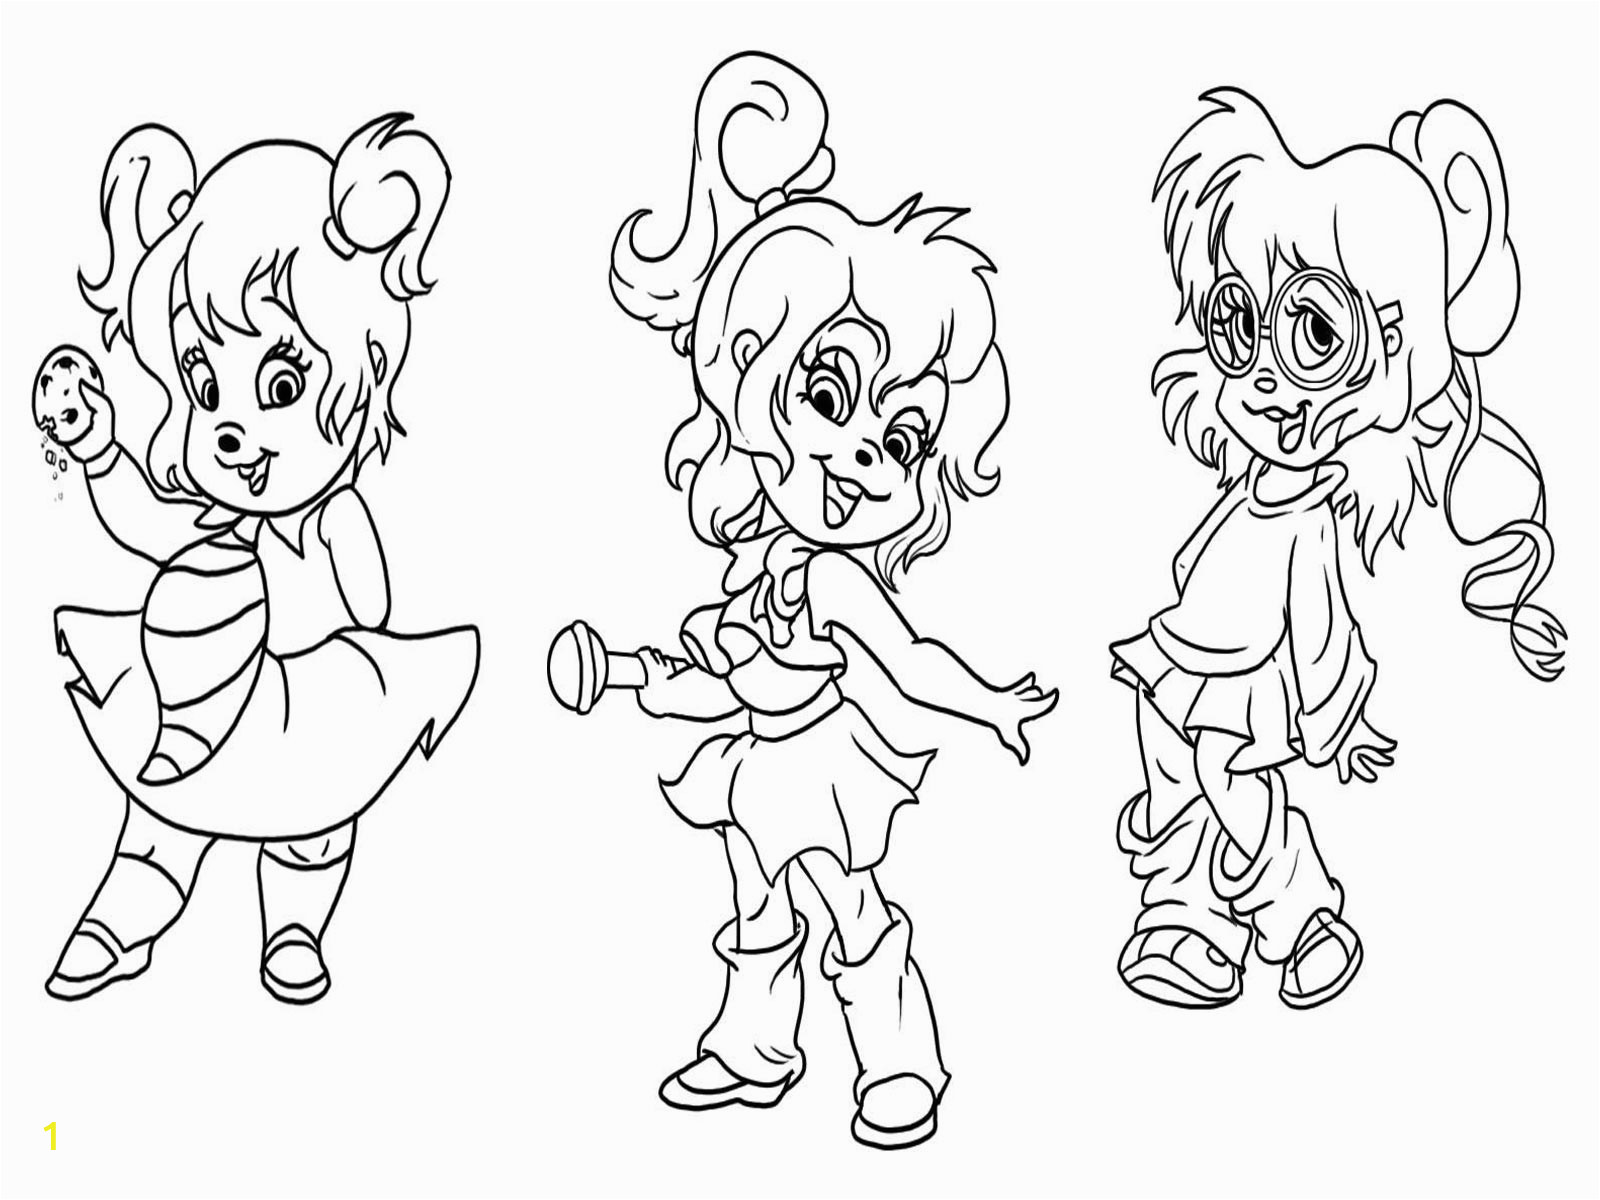 alvin and the chipmunks coloring pages 9u alvin and the chipmunks chipettes coloring pages